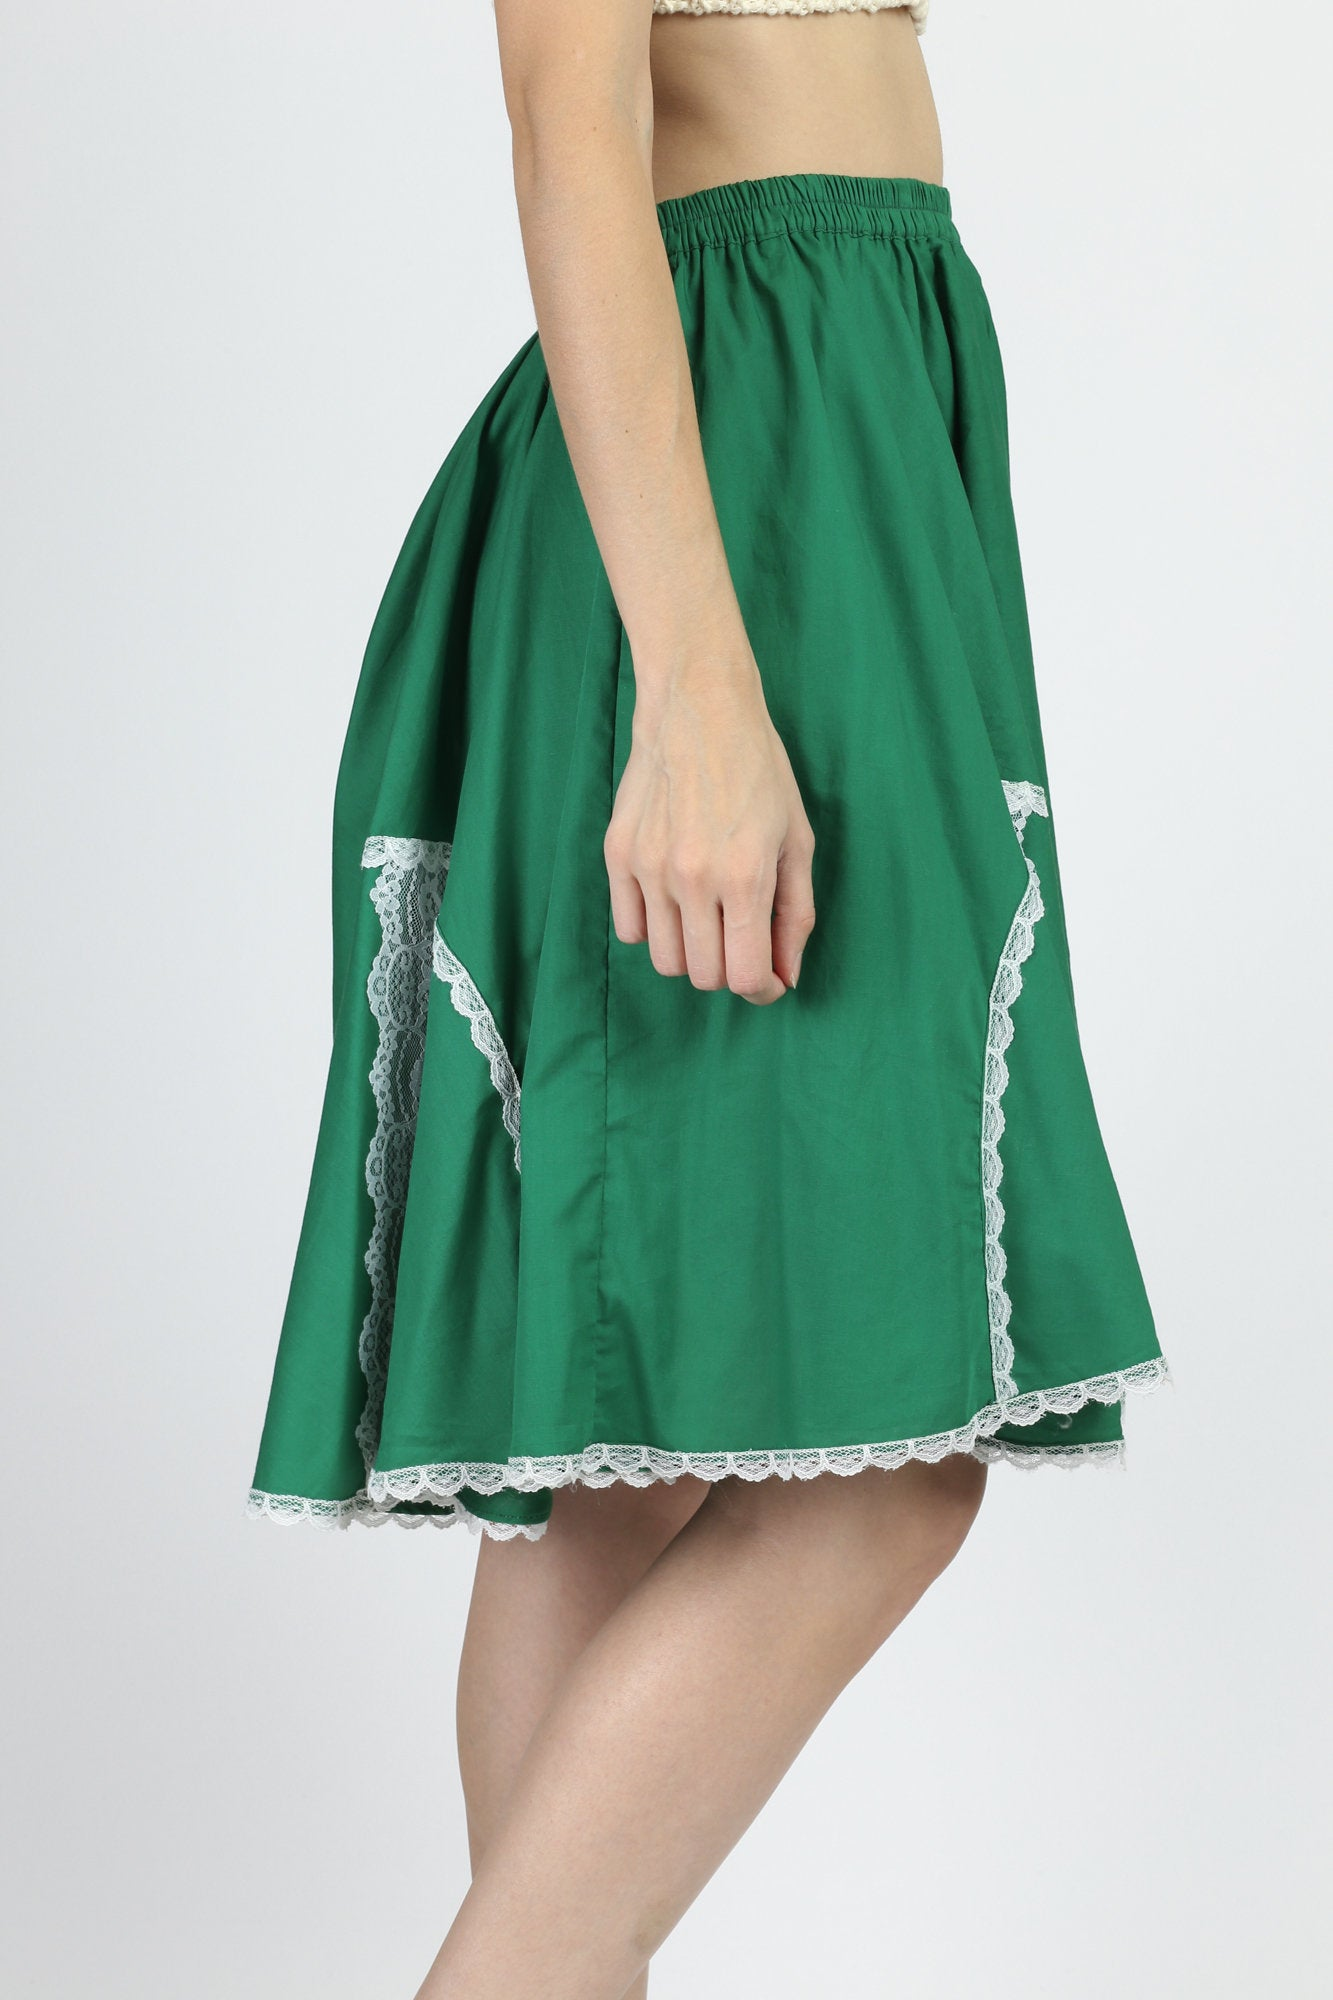 70s 80s Green & White Lace Rockabilly Skirt - Medium to Large